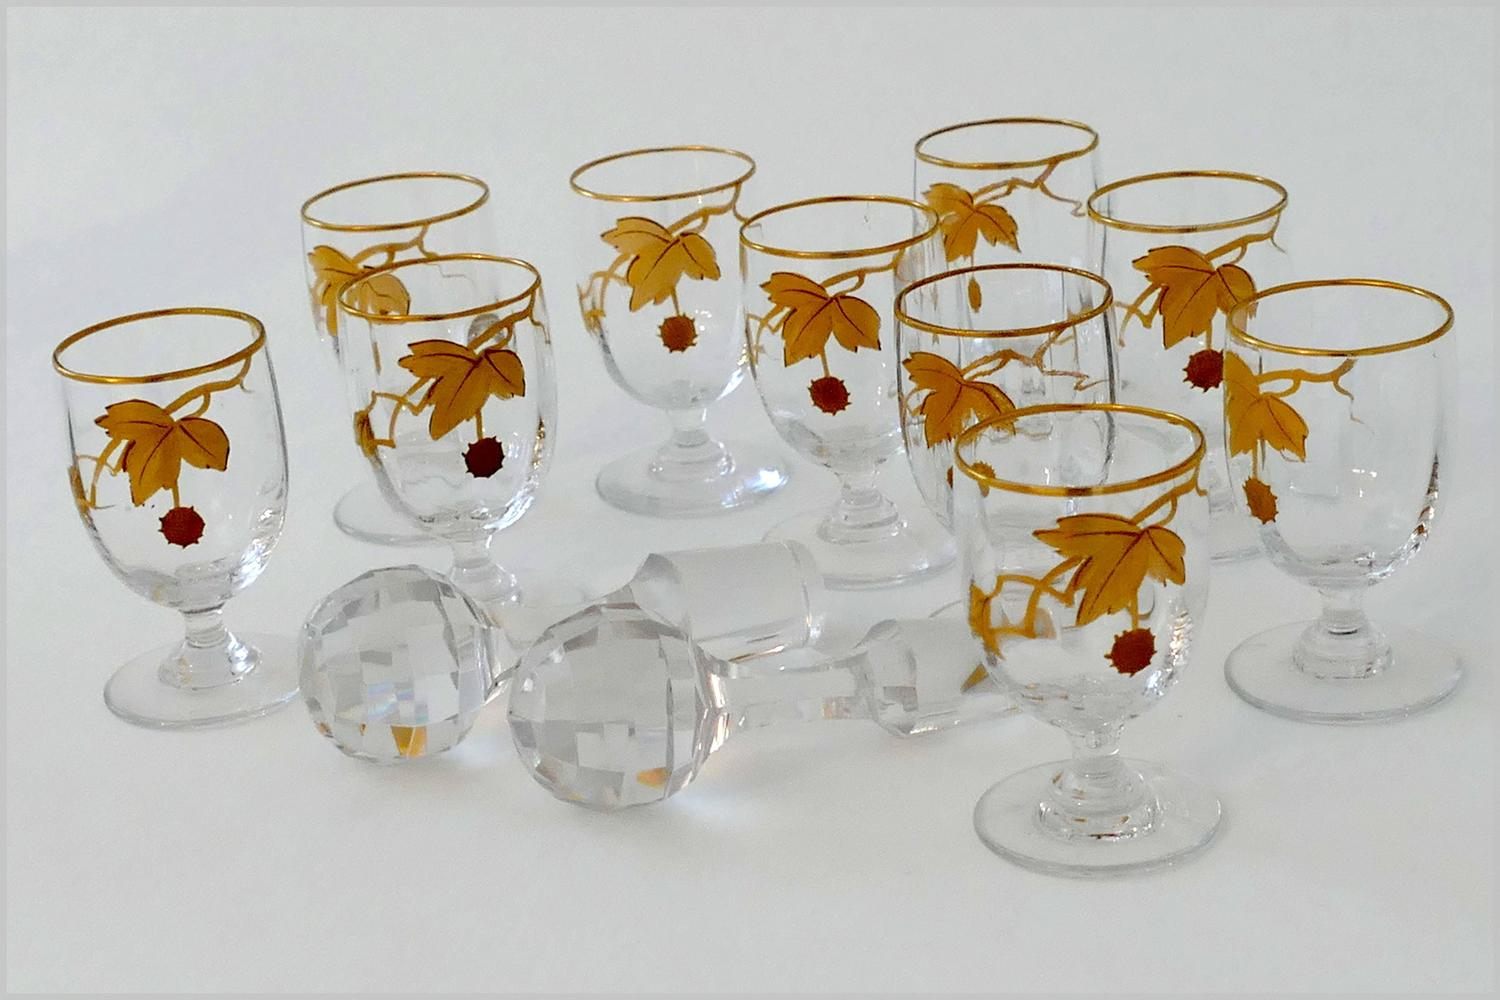 rare baccarat gold crystal liquor or aperitif service sycamore tree model 1900 for sale at 1stdibs. Black Bedroom Furniture Sets. Home Design Ideas